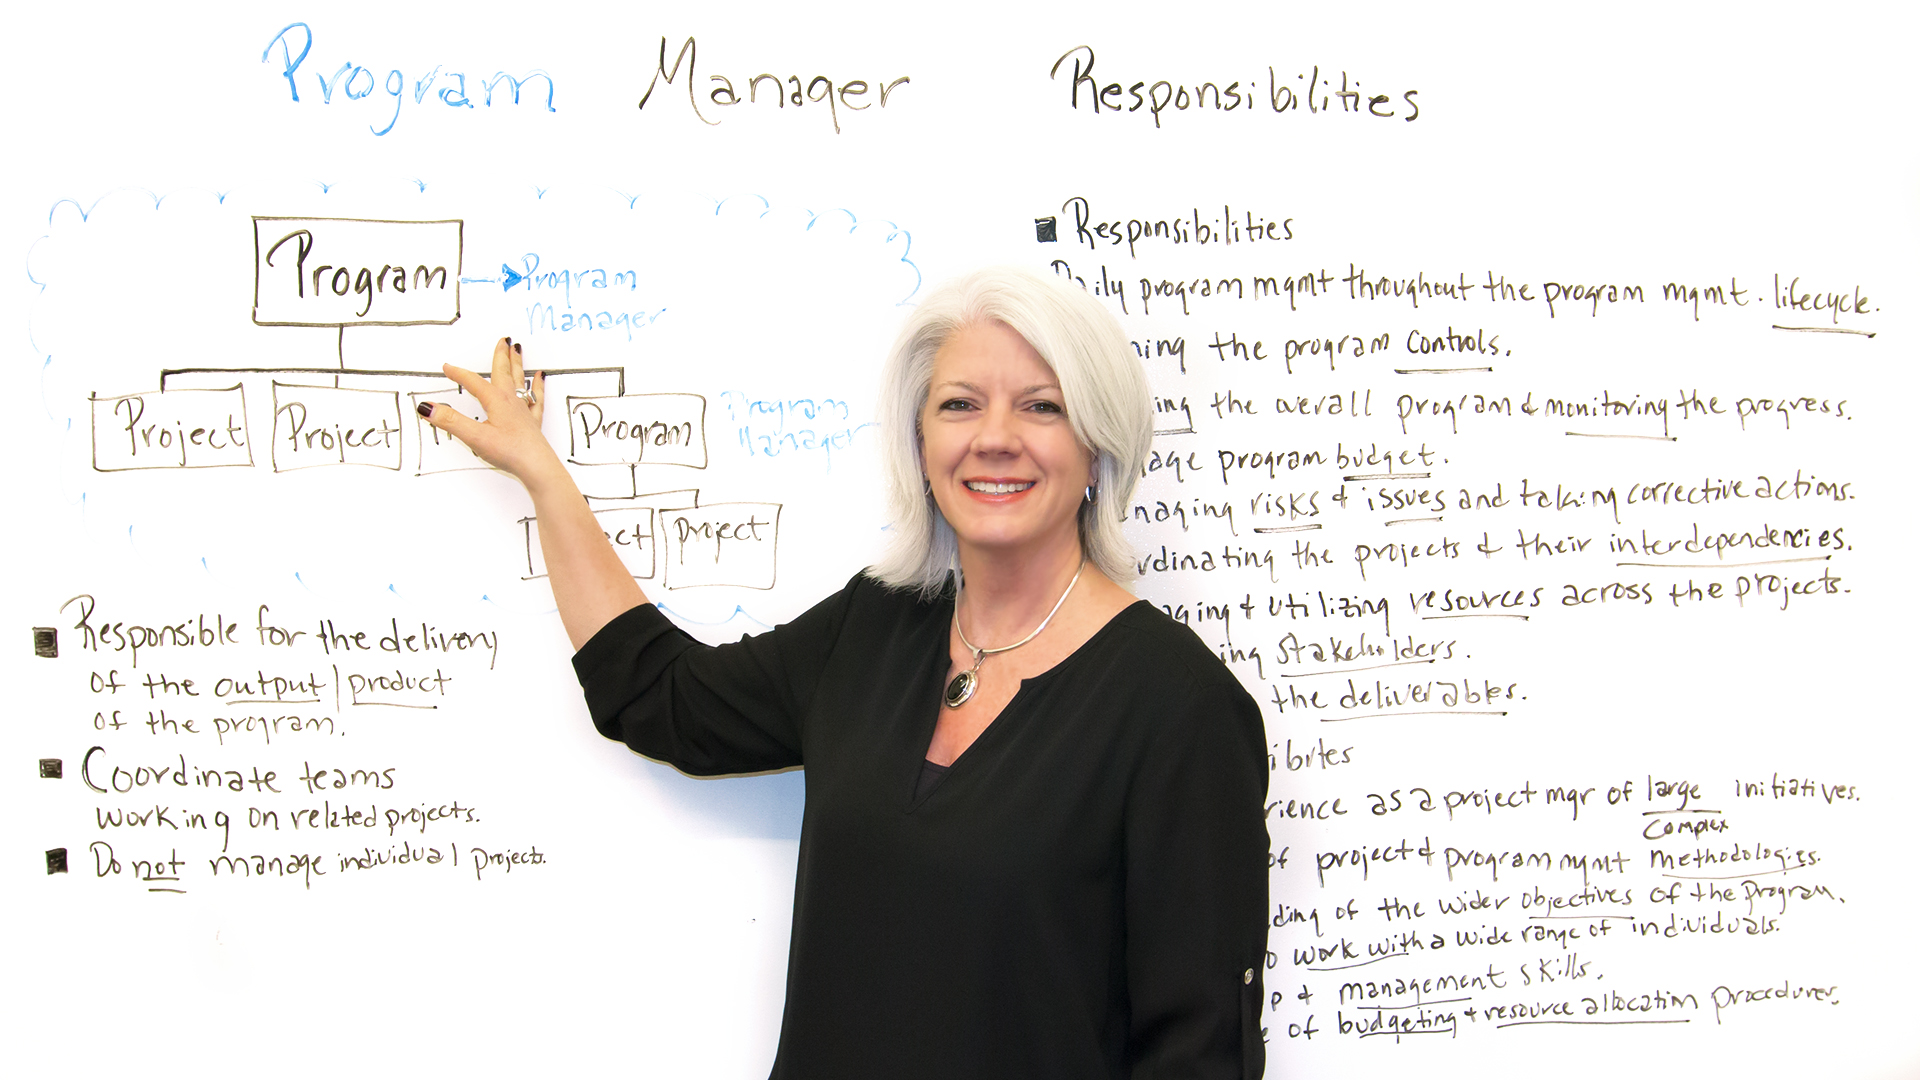 Program Management: Program Manager Responsibilities